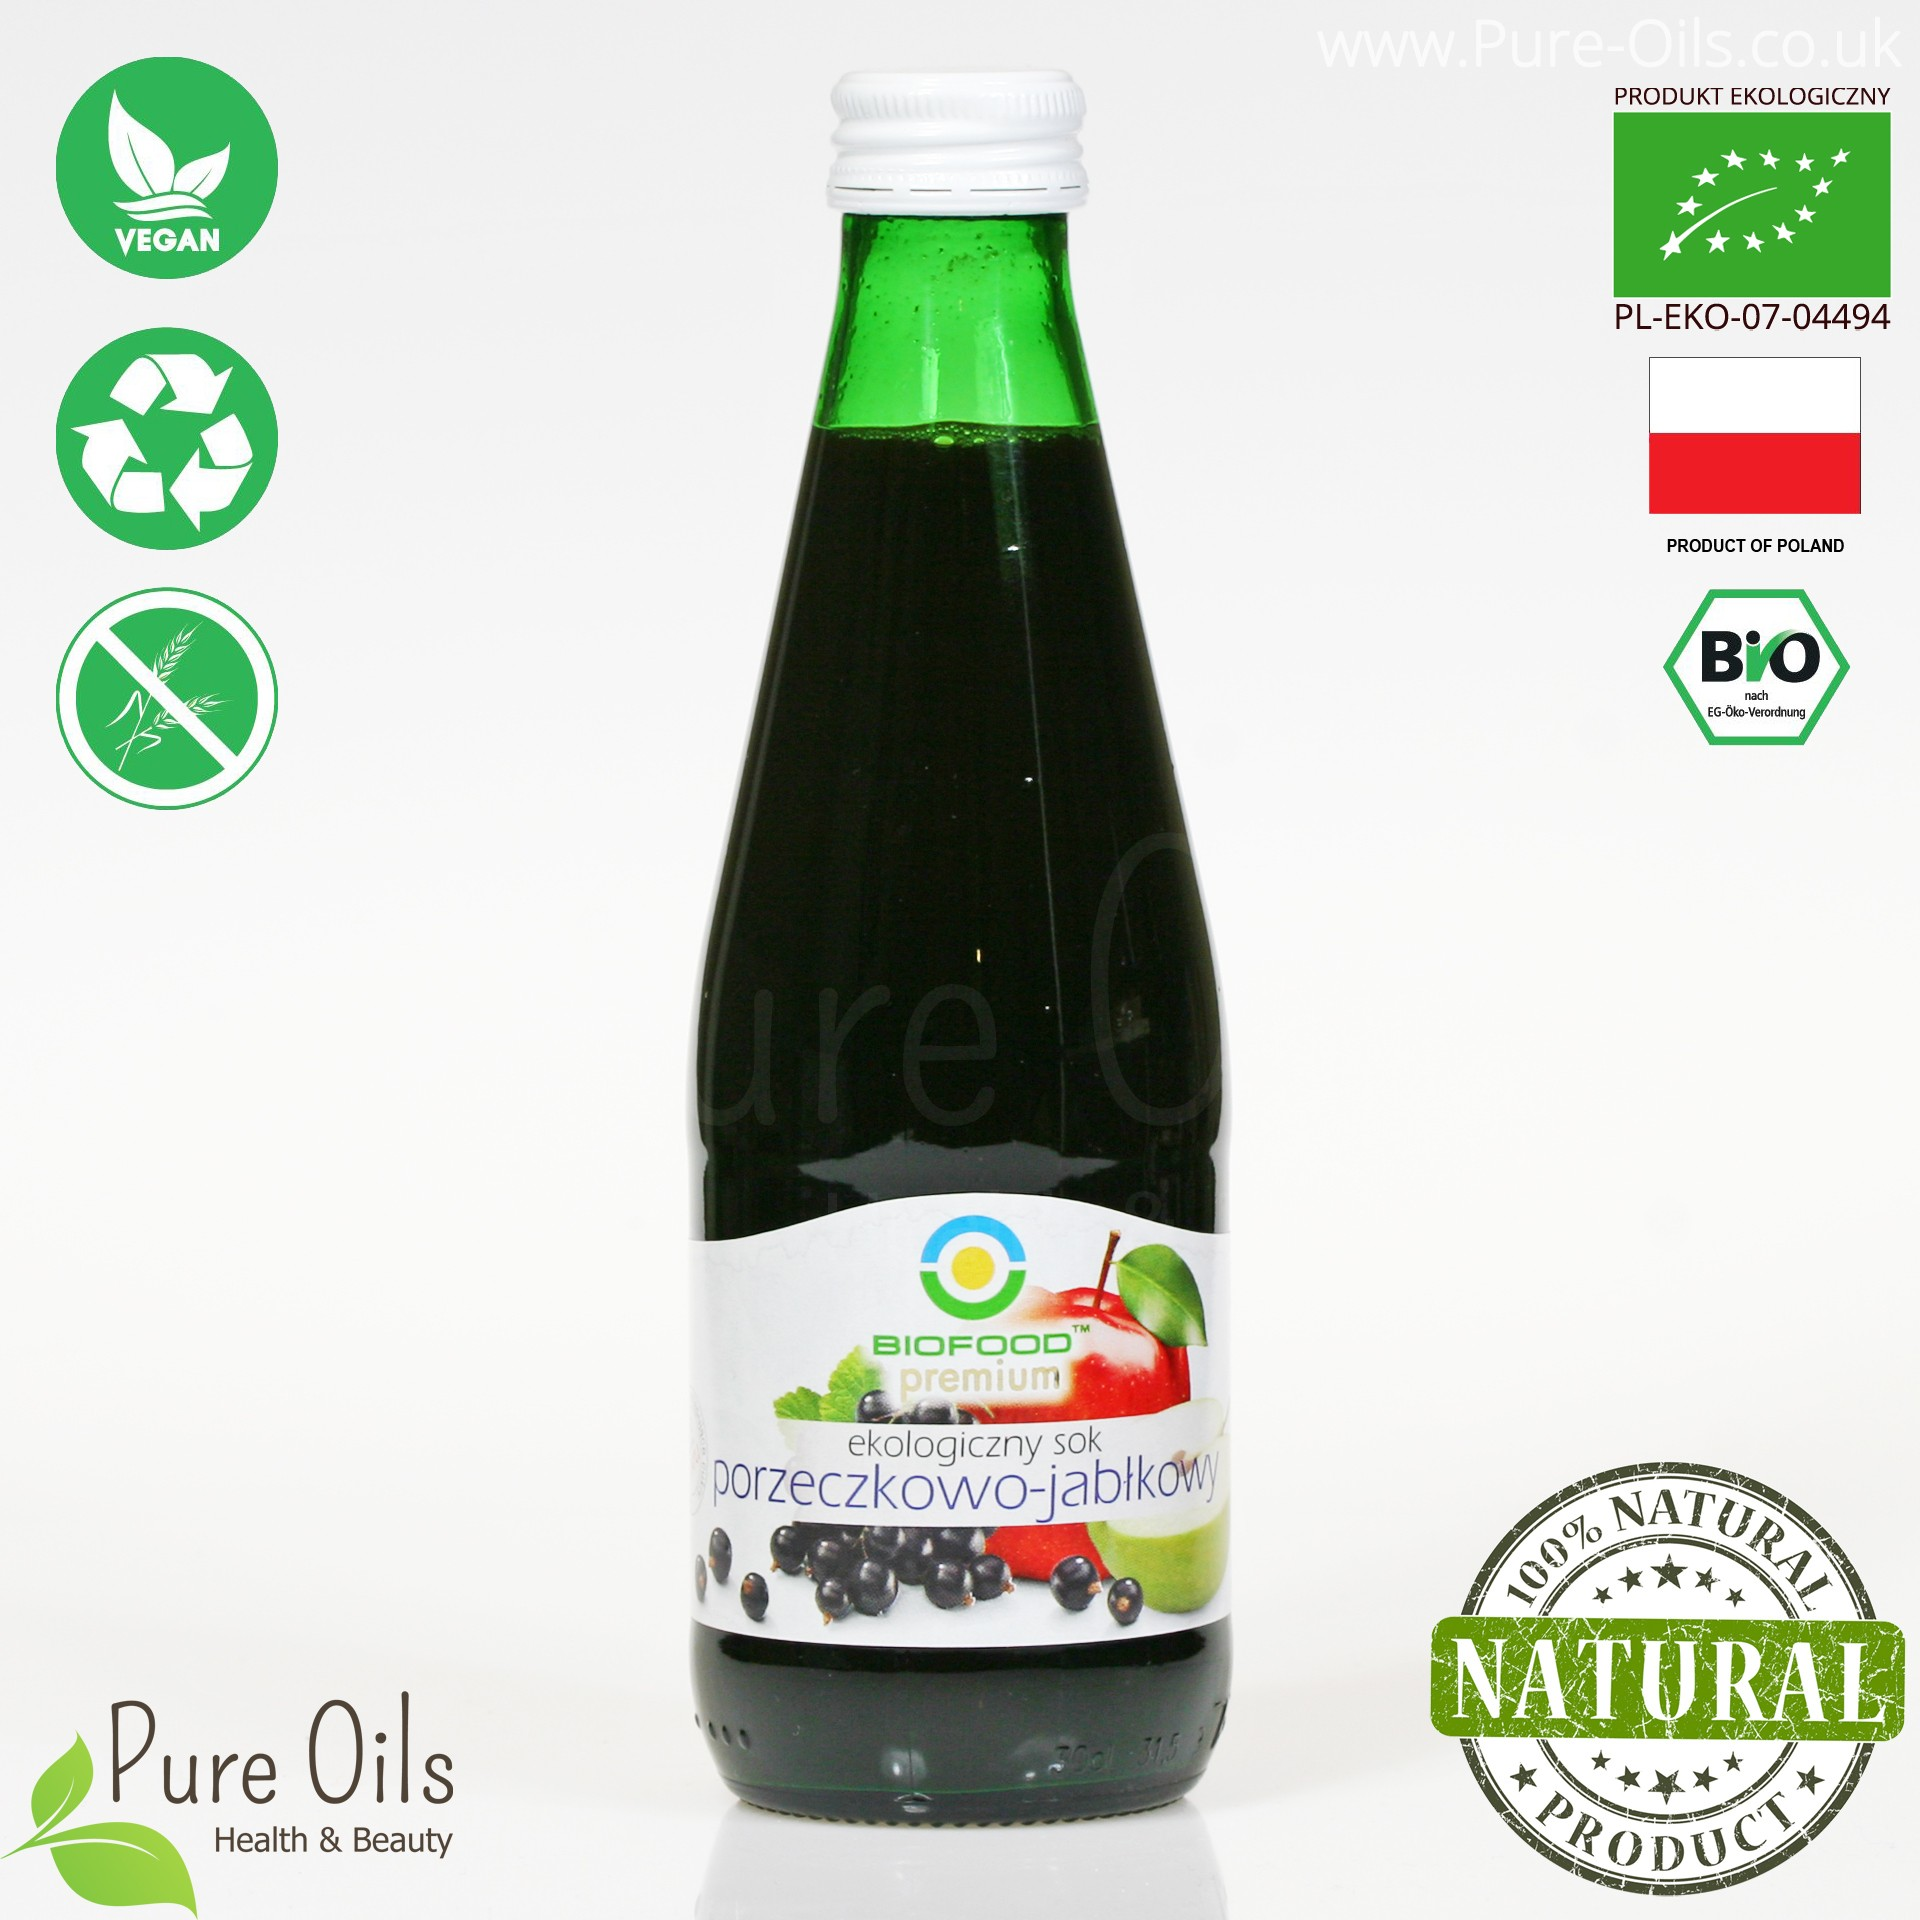 Blackcurrant-Apple Juice - Pressed, NFC, Organic, BioFood